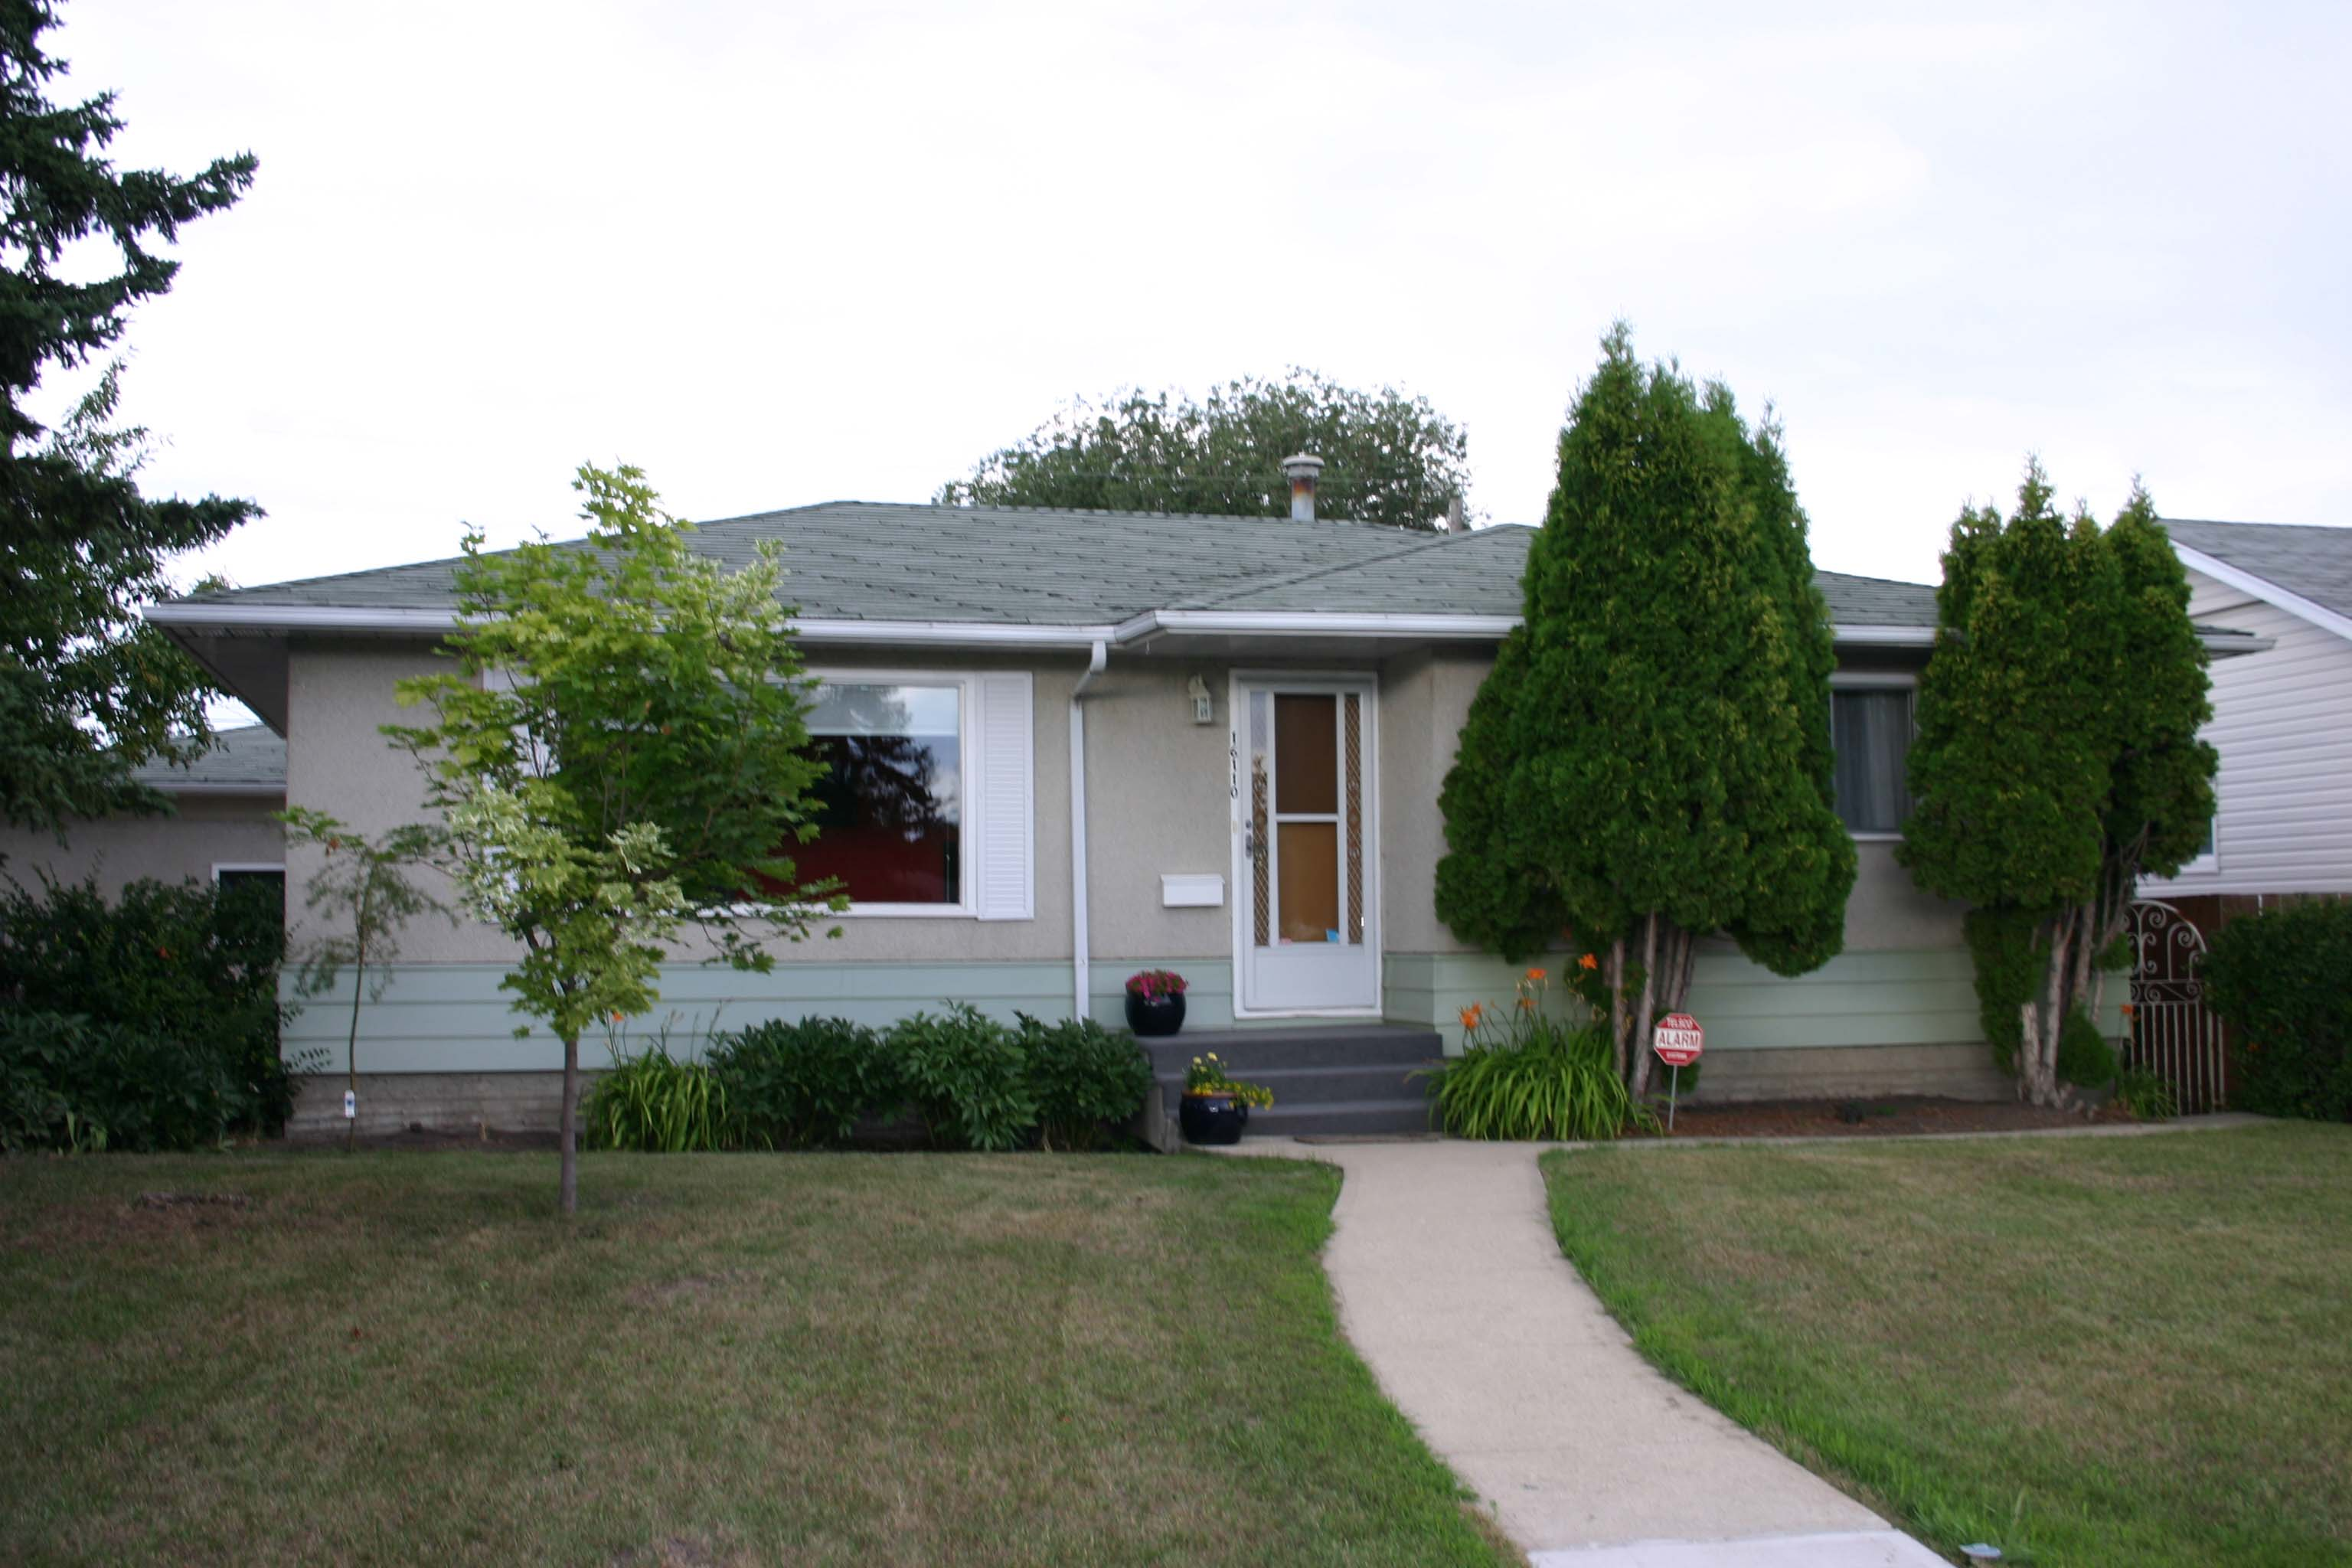 House in Meadowlark, Edmonton